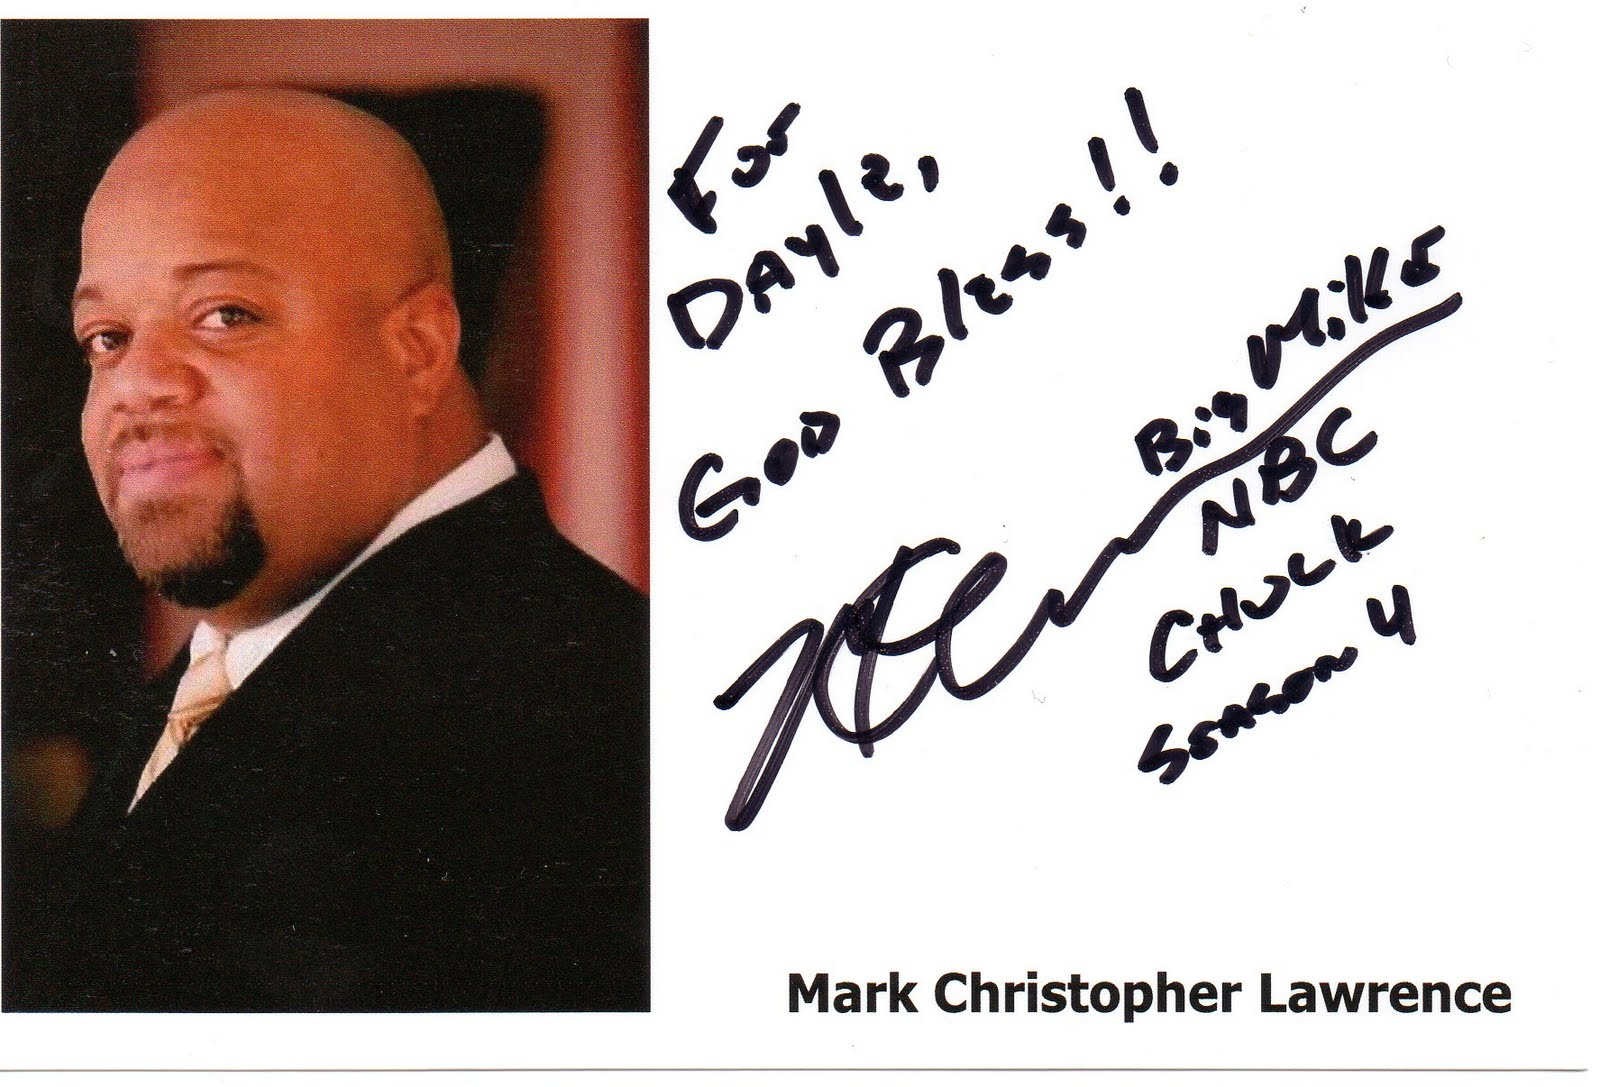 mark christopher lawrence earth wind fire